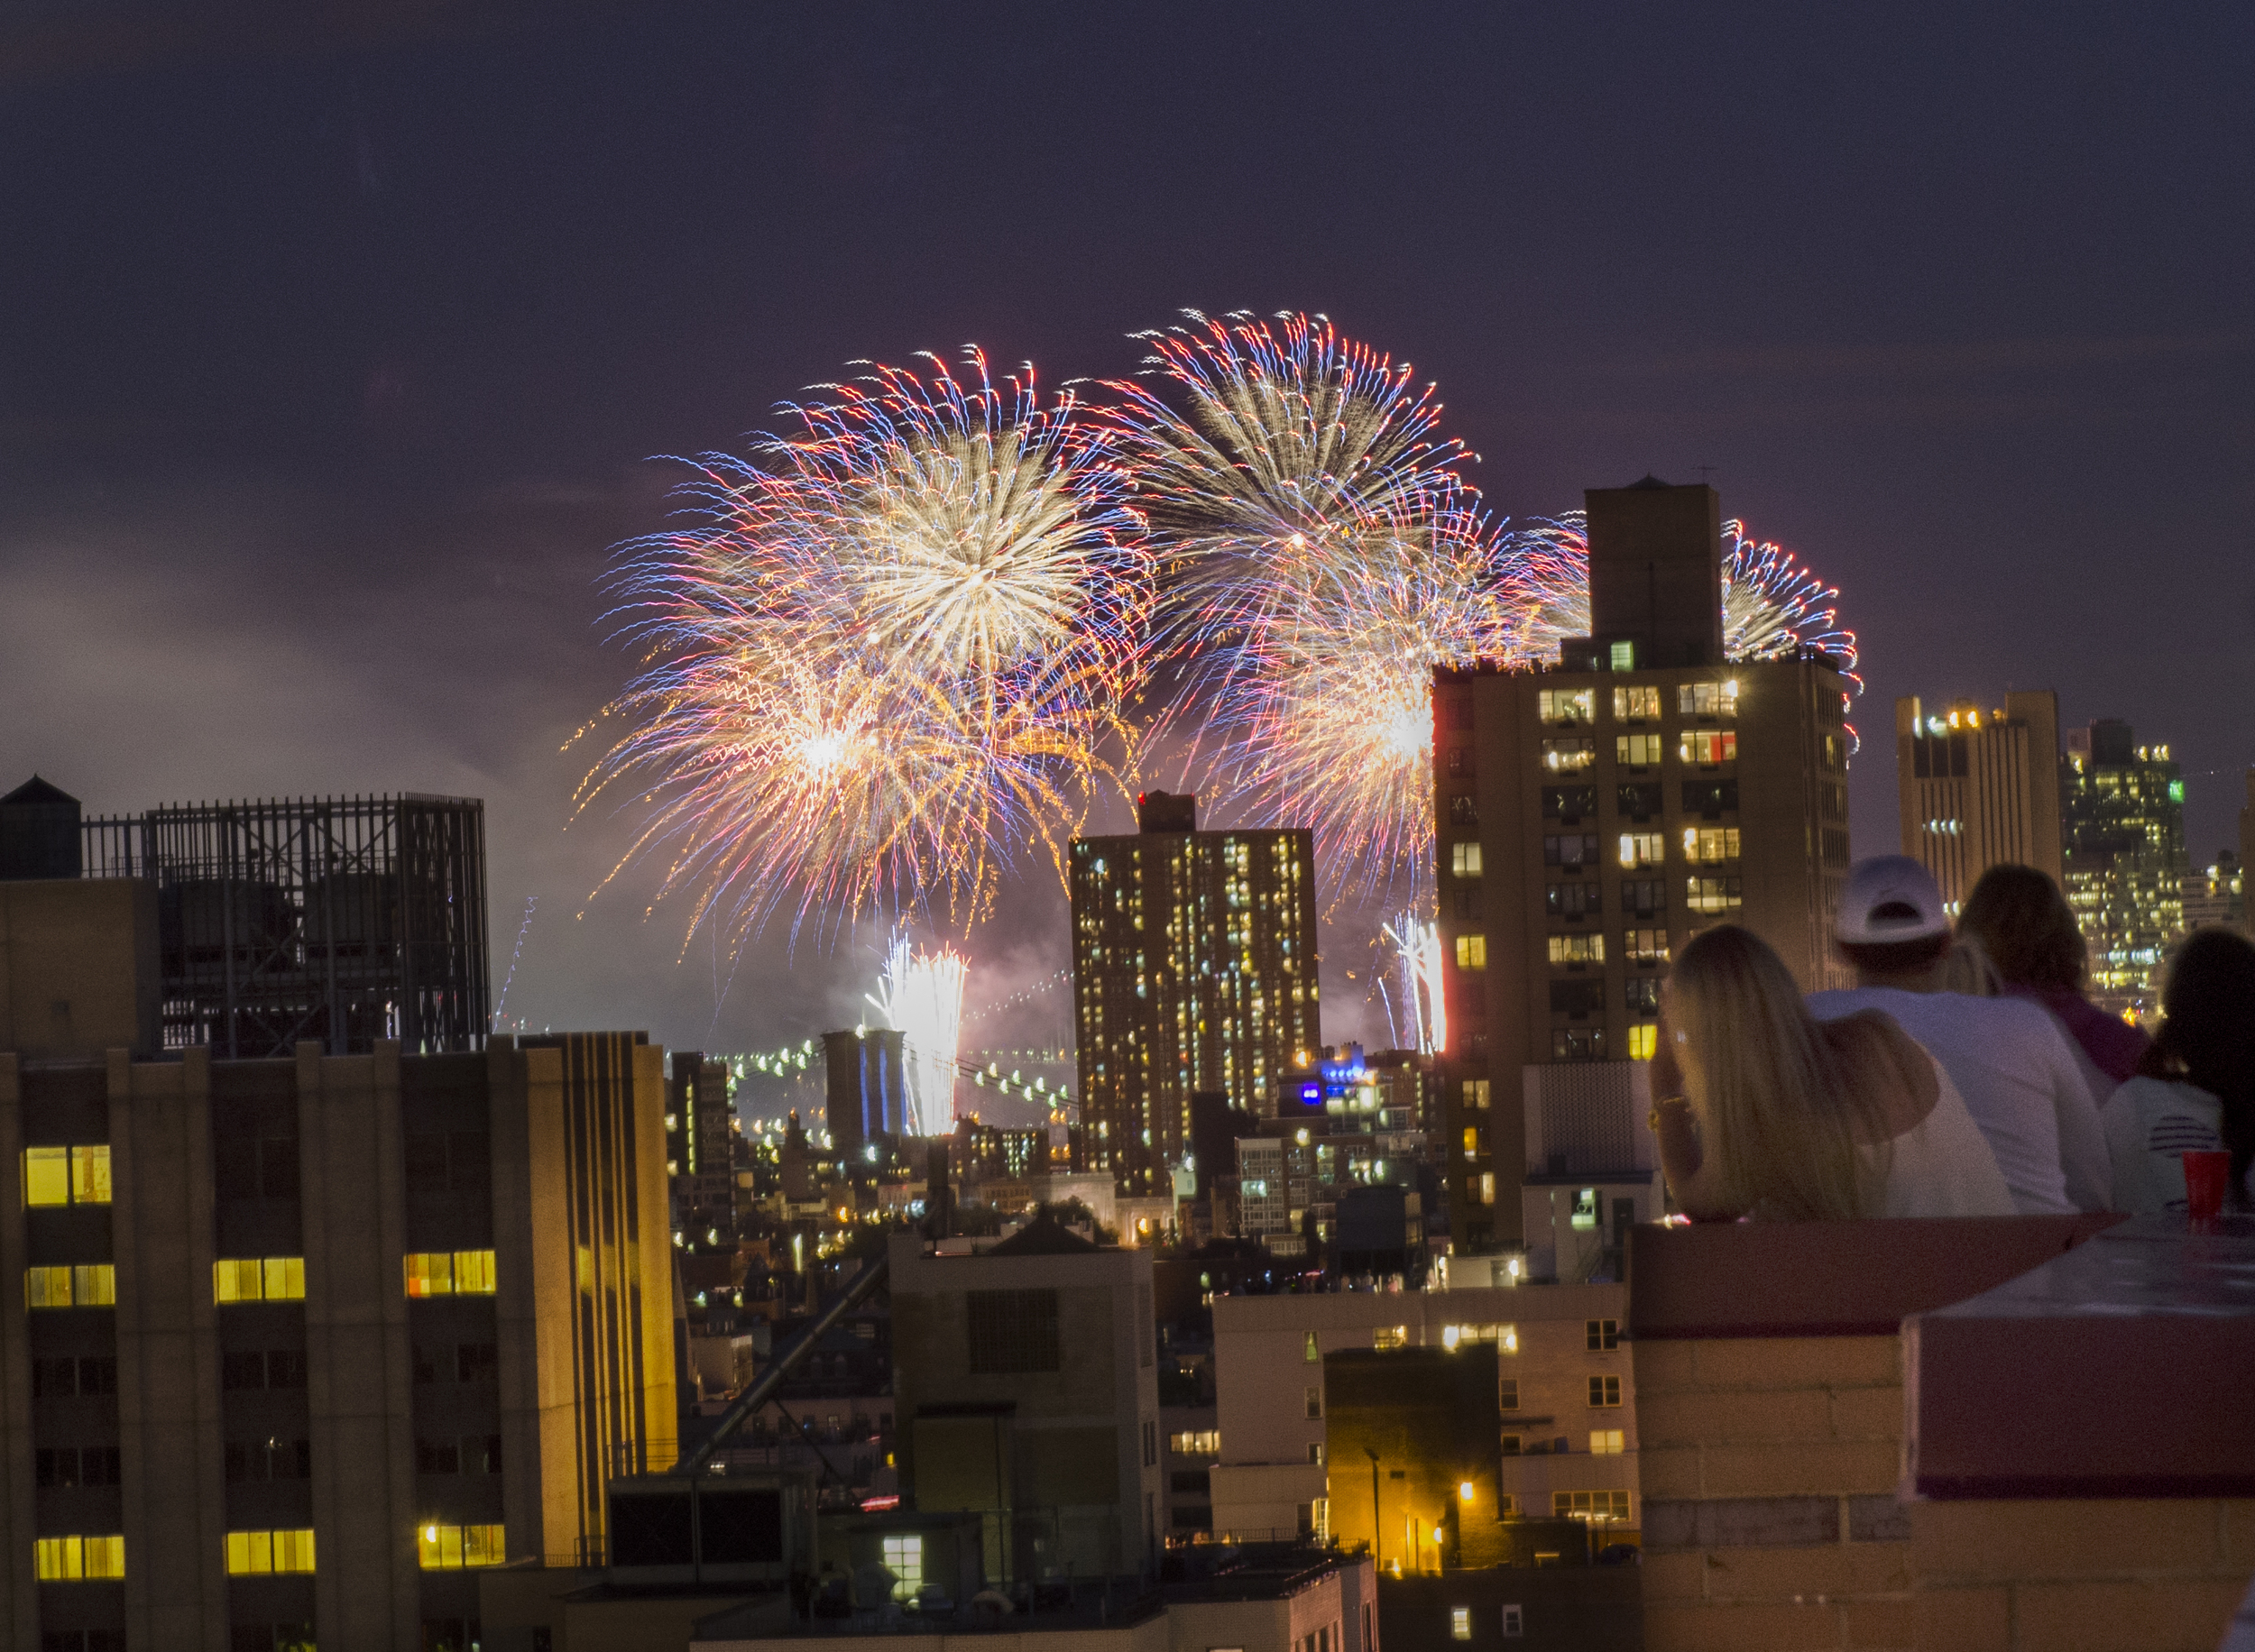 Spectators try to catch a glimpse of the Macy's Fourth of July Fireworks show.